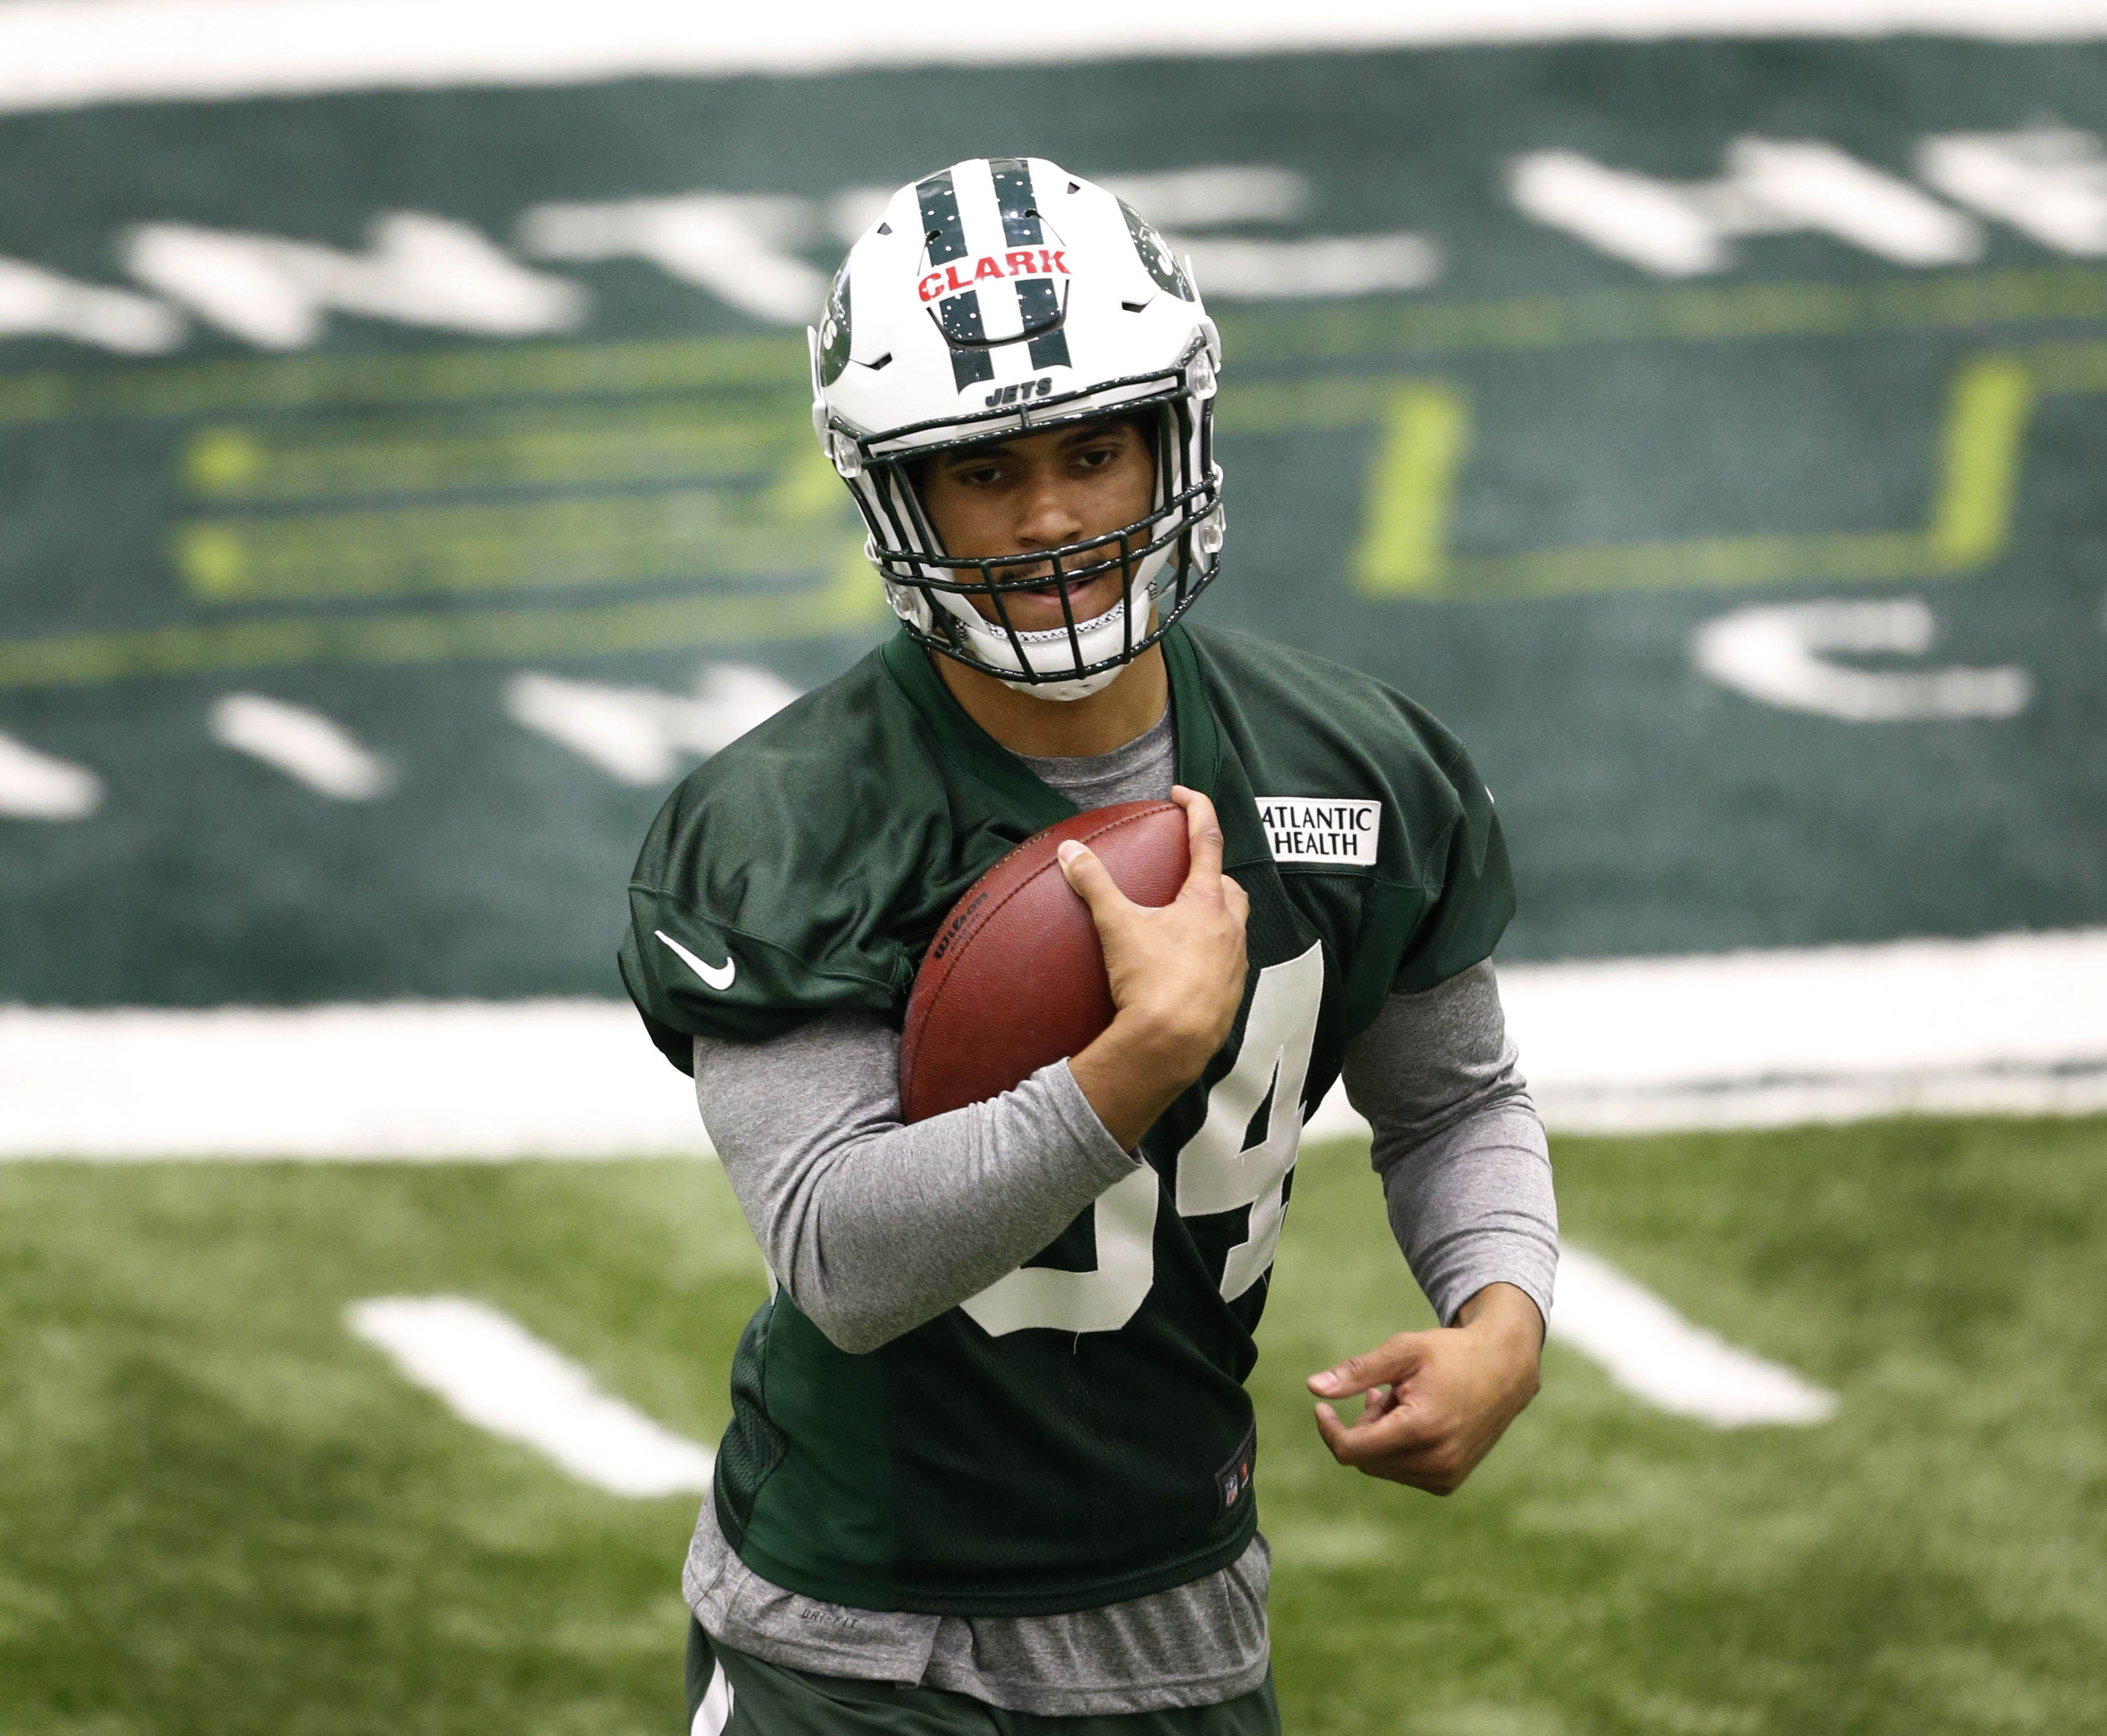 10043178-nfl-new-york-jets-rookie-minicamp-1